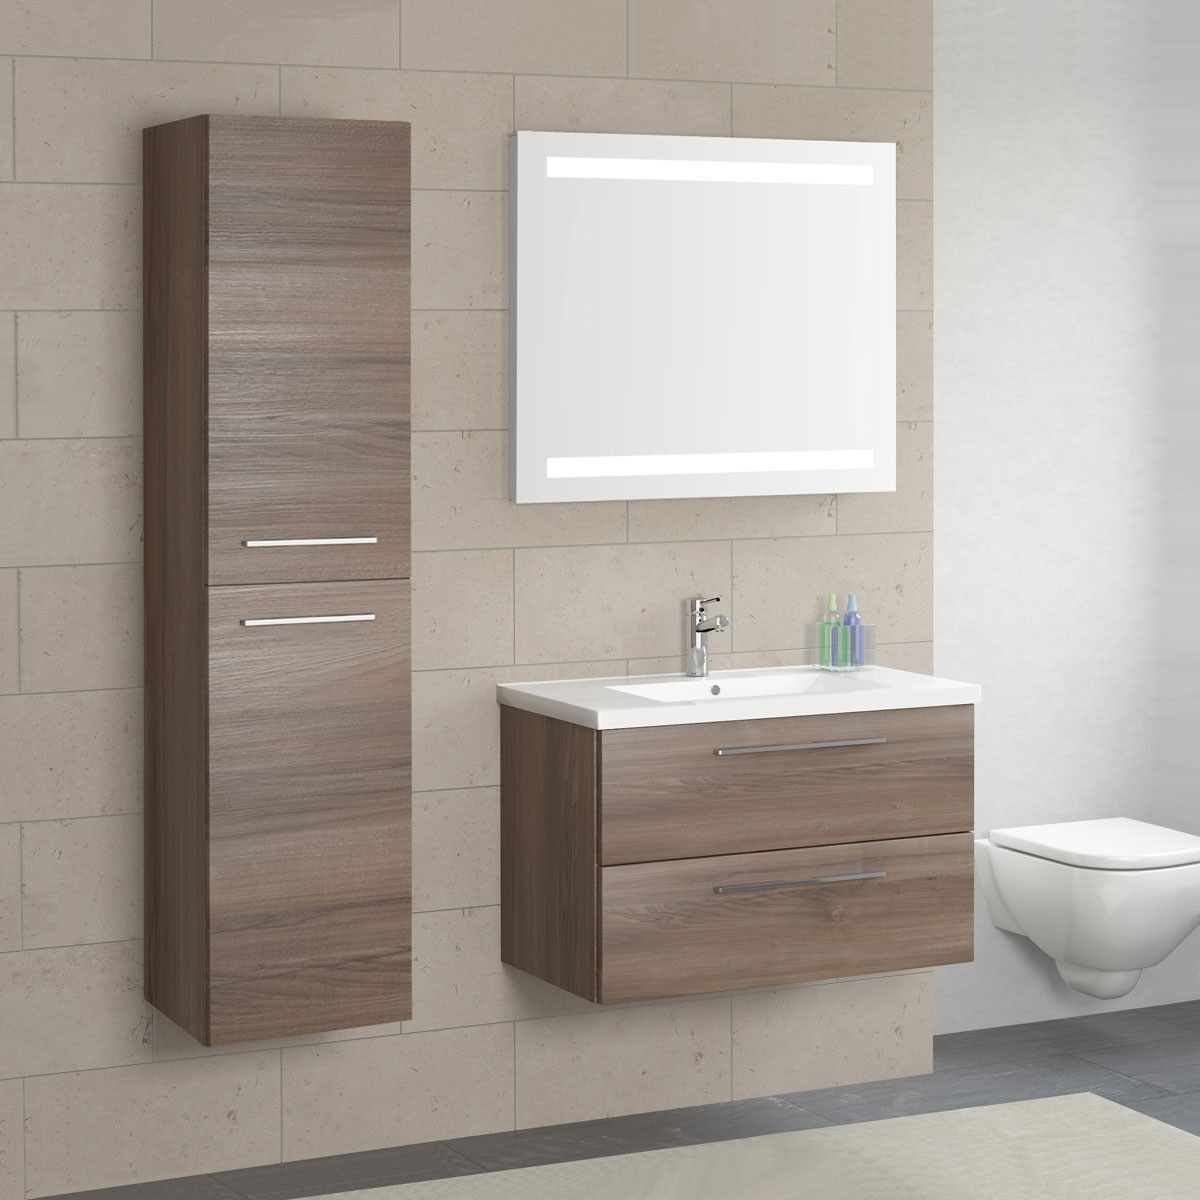 Seville Two Drawer Wall Hung Vanity Unit Basin Walnut 800 Washbasin Design Wall Hung Vanity Bathroom Interior Design